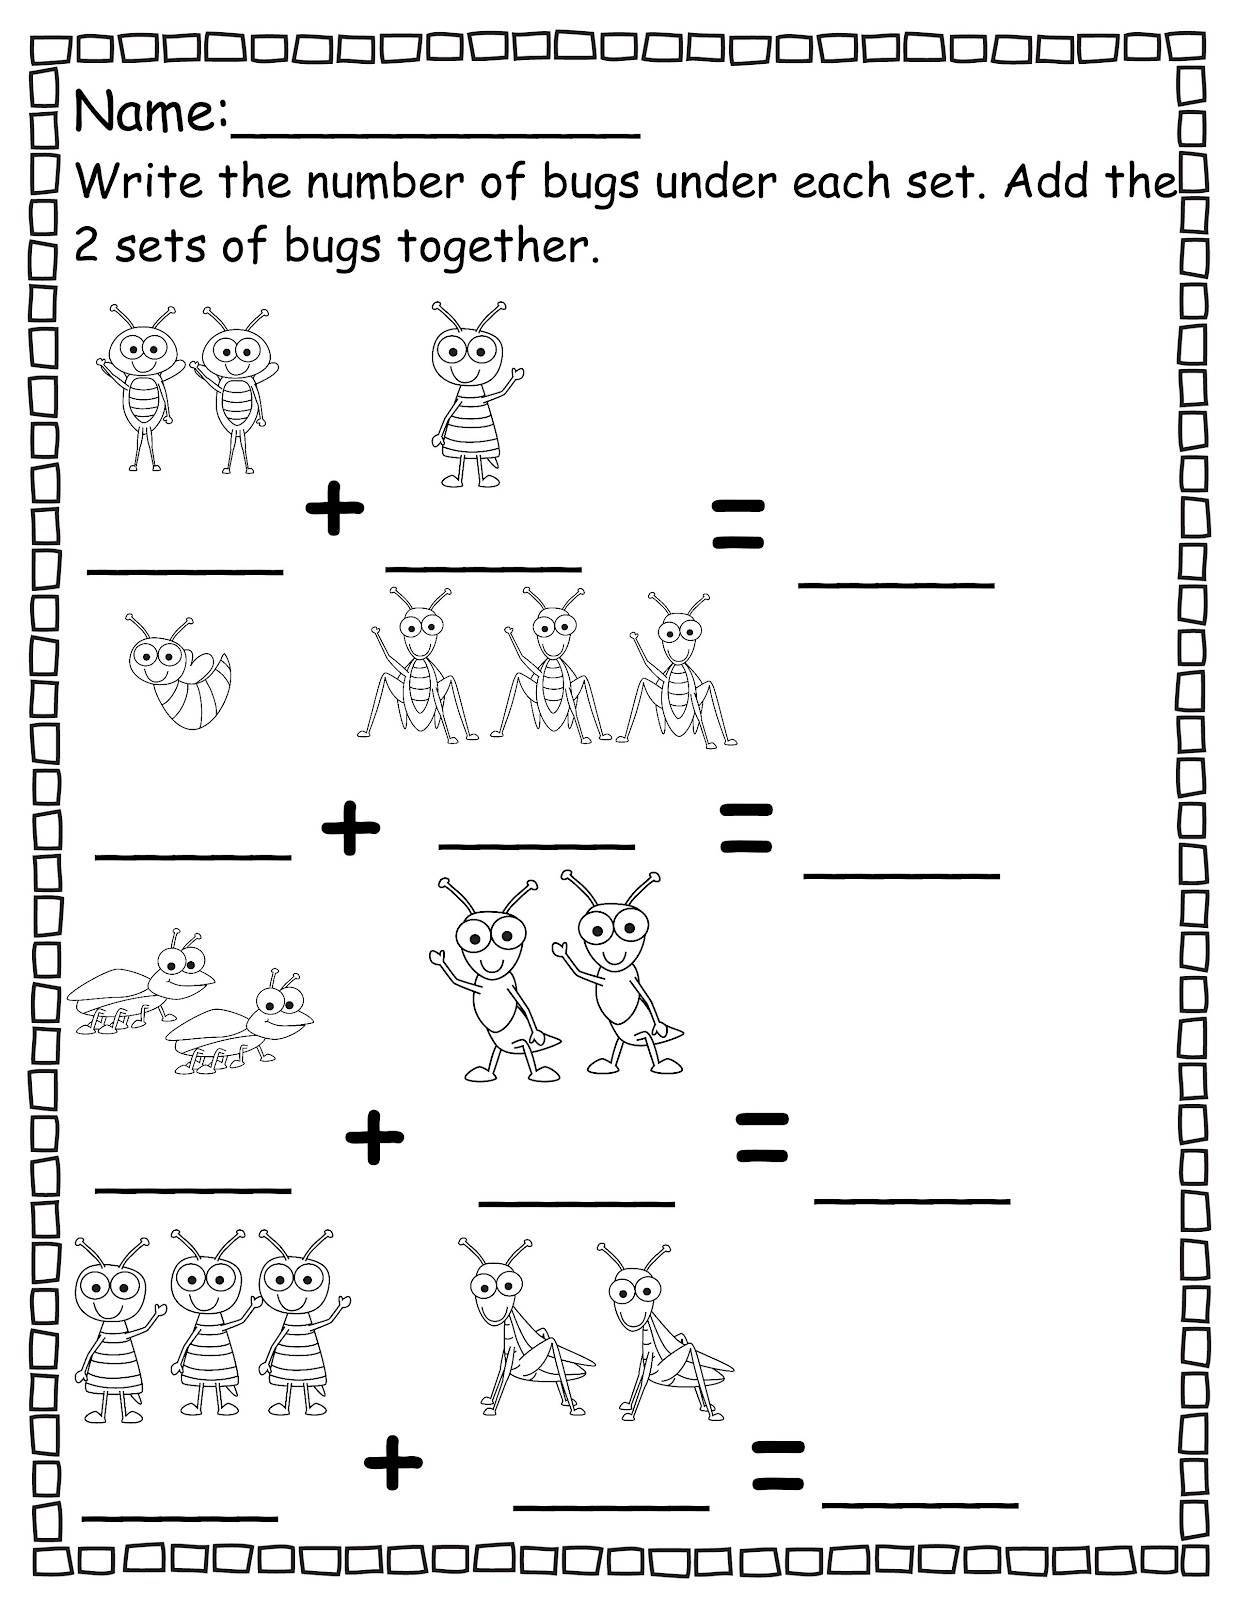 Worksheet Worksheets For Prek free addition worksheets for pre k delwfg com number activity shelter